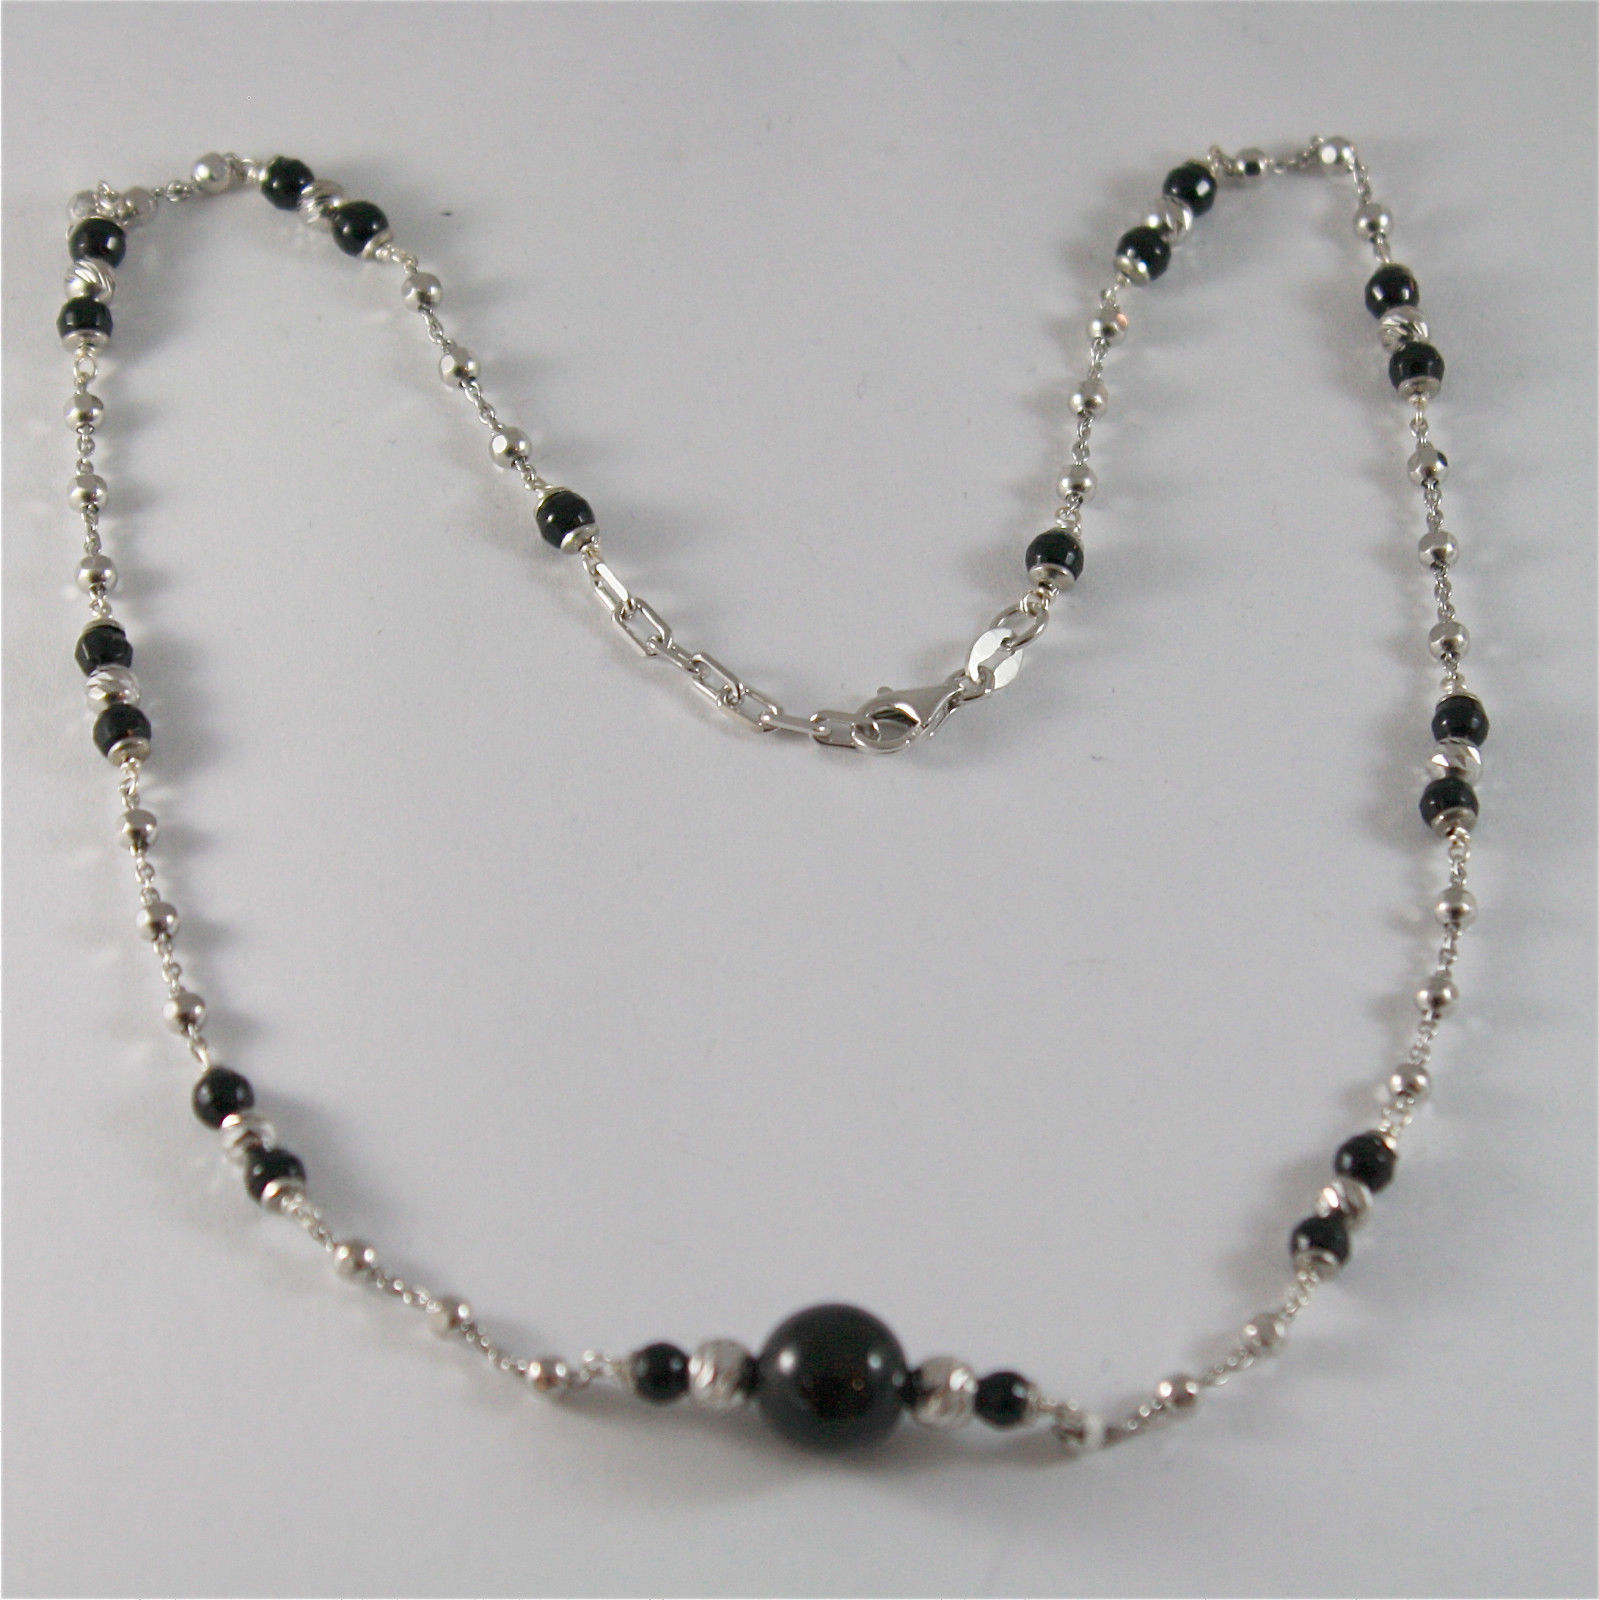 925 SILVER NECKLACE WITH 8 MM ROUND ONYX AND FACETED BALLS ITALIAN JEWELLERY